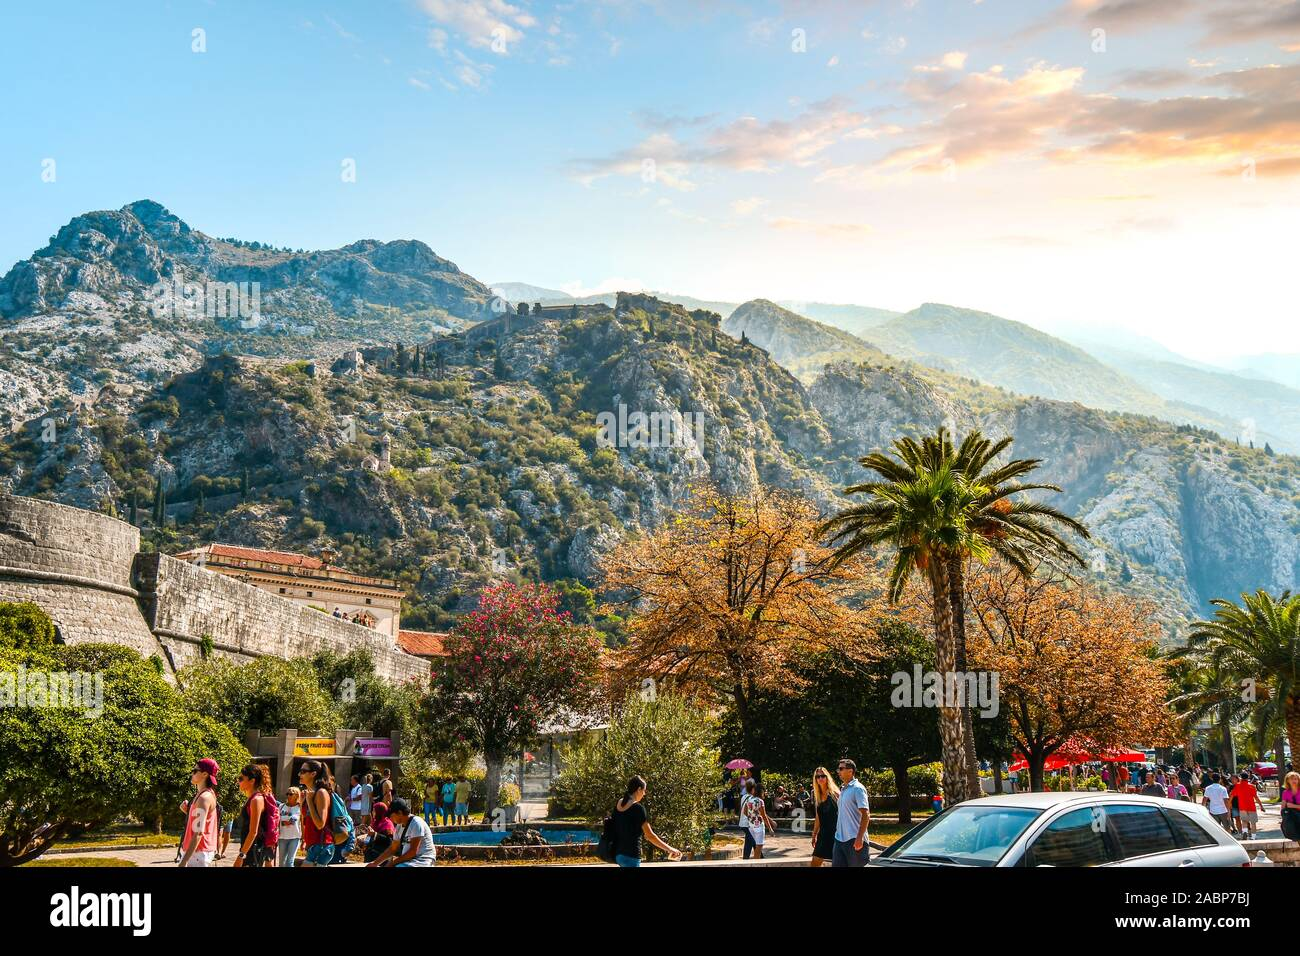 Tourists pass the exterior of the walled city of Kotor as the Castle of San Giovanni and the Montengro mountains rise above late afternoon in summer Stock Photo